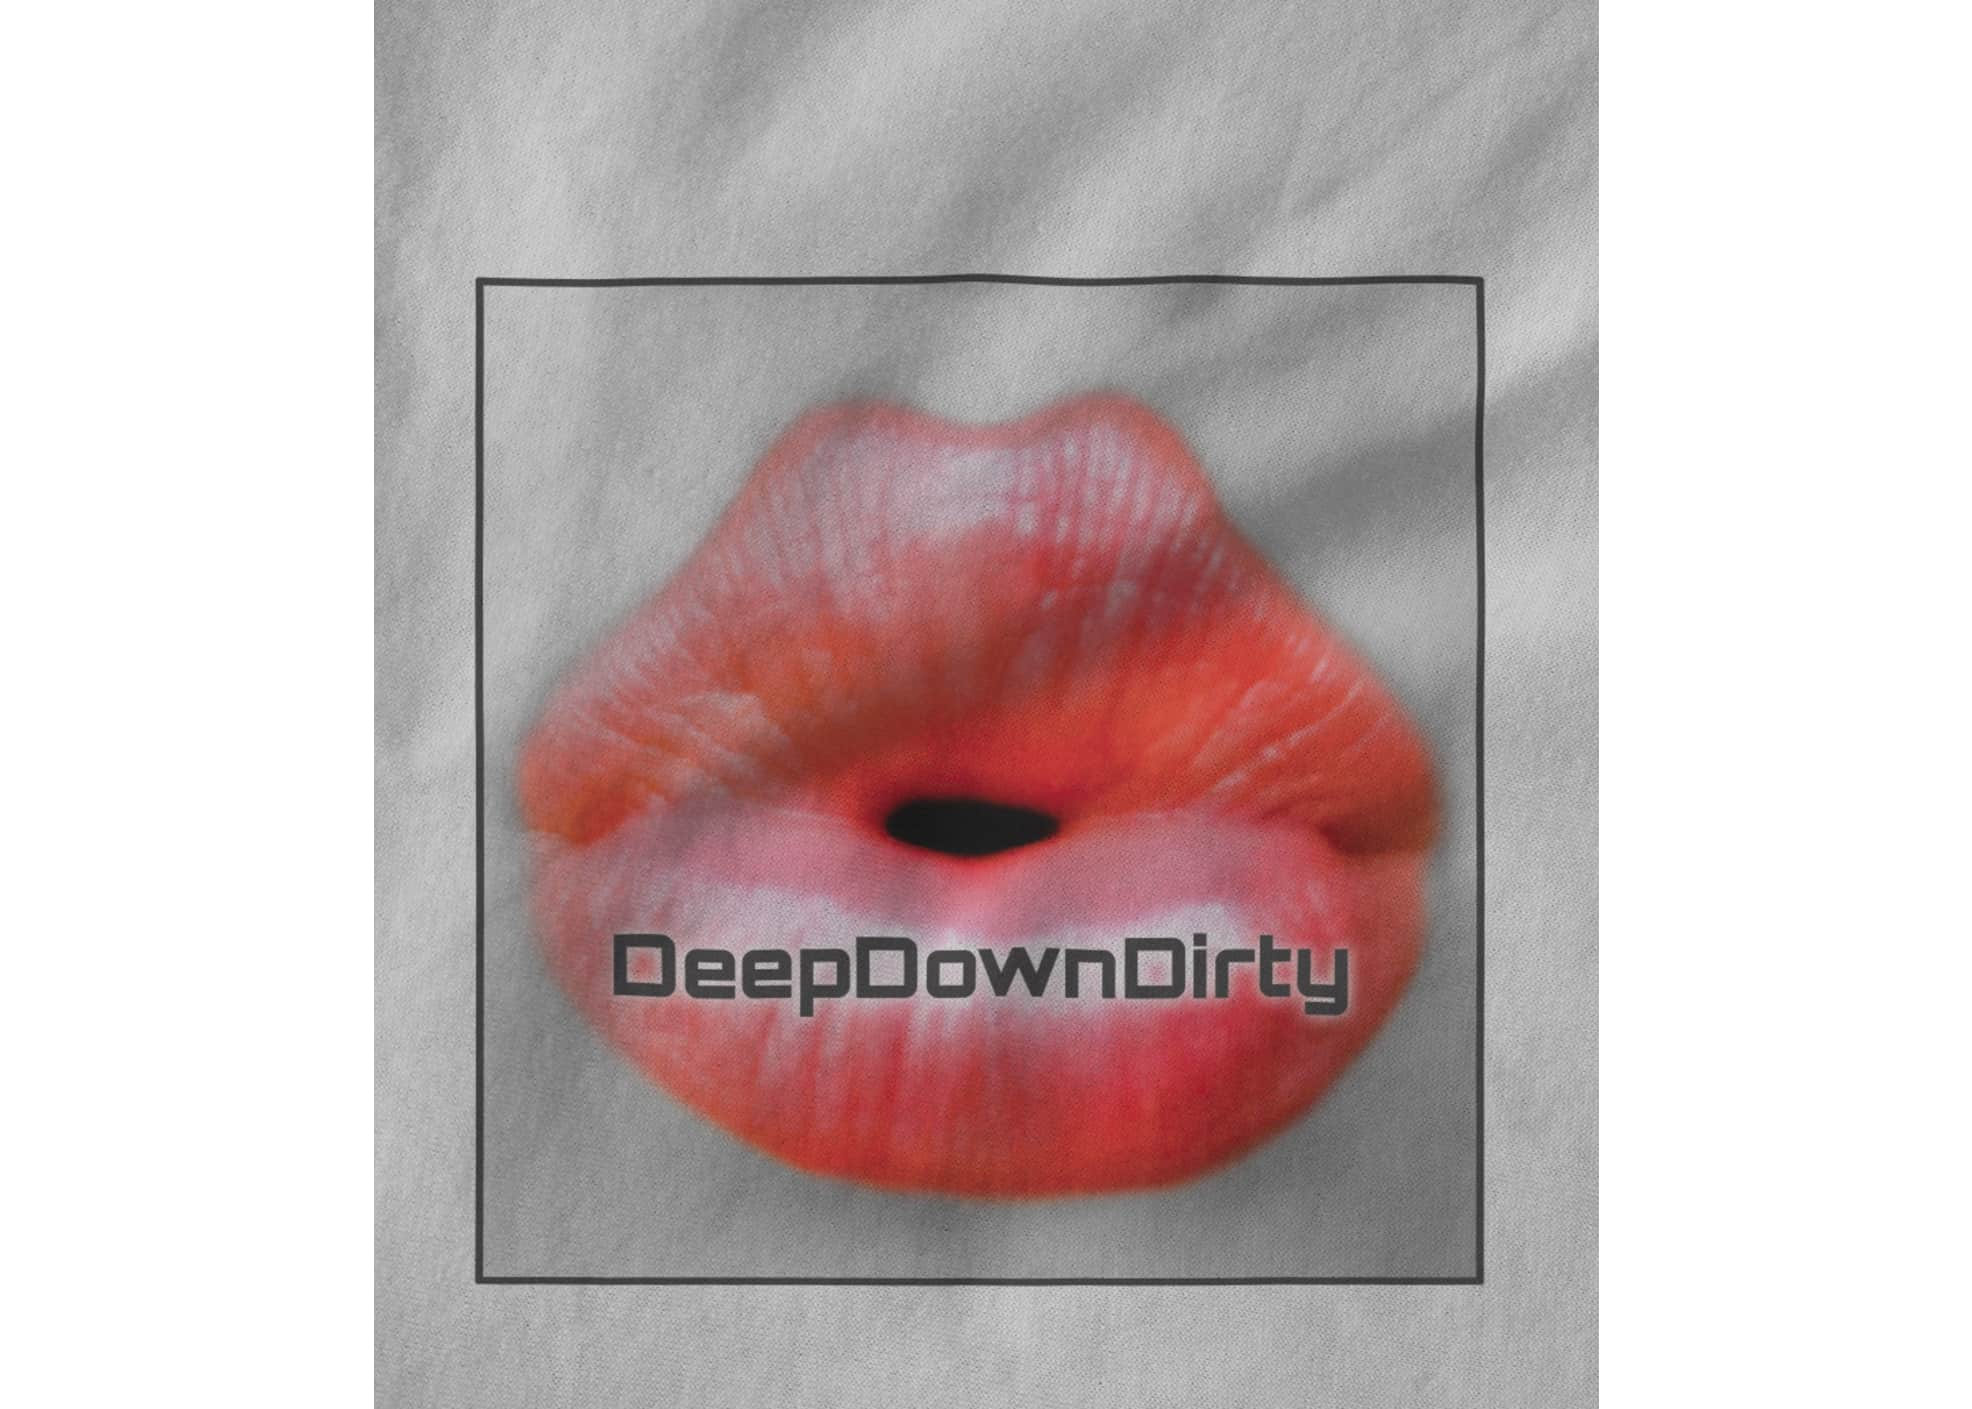 Deepdowndirty record label classic lips square 1522800469